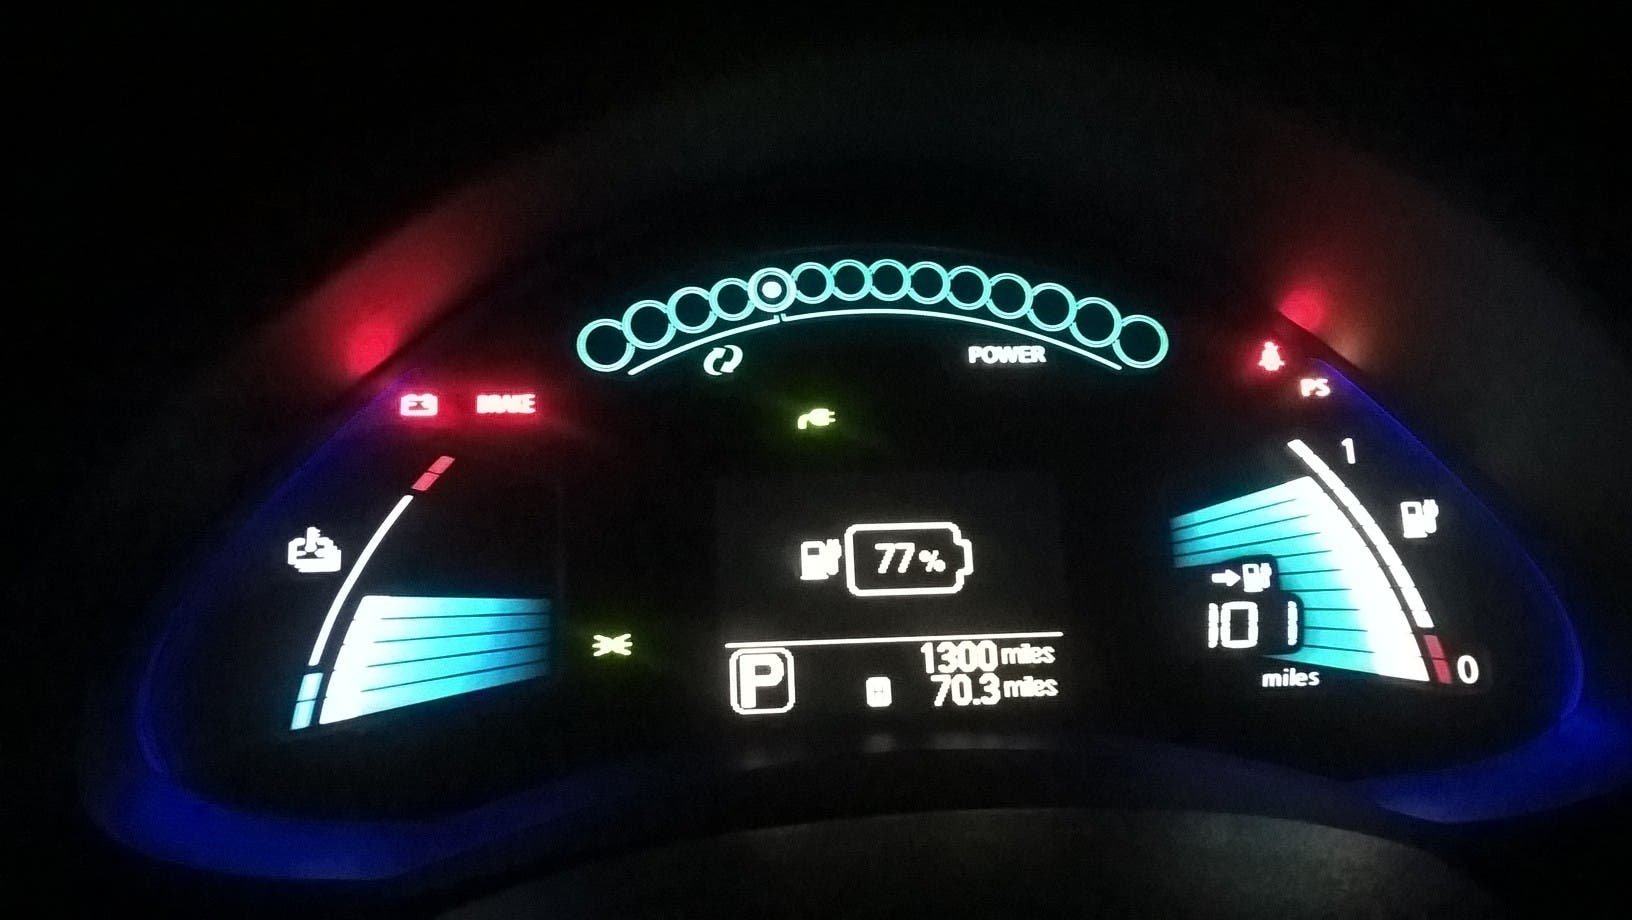 Increased Range Of The Thing Which Was Showing 101 Miles In Guess O Meter With 77 Charge Equaling To Some 130 210 Kms A Full